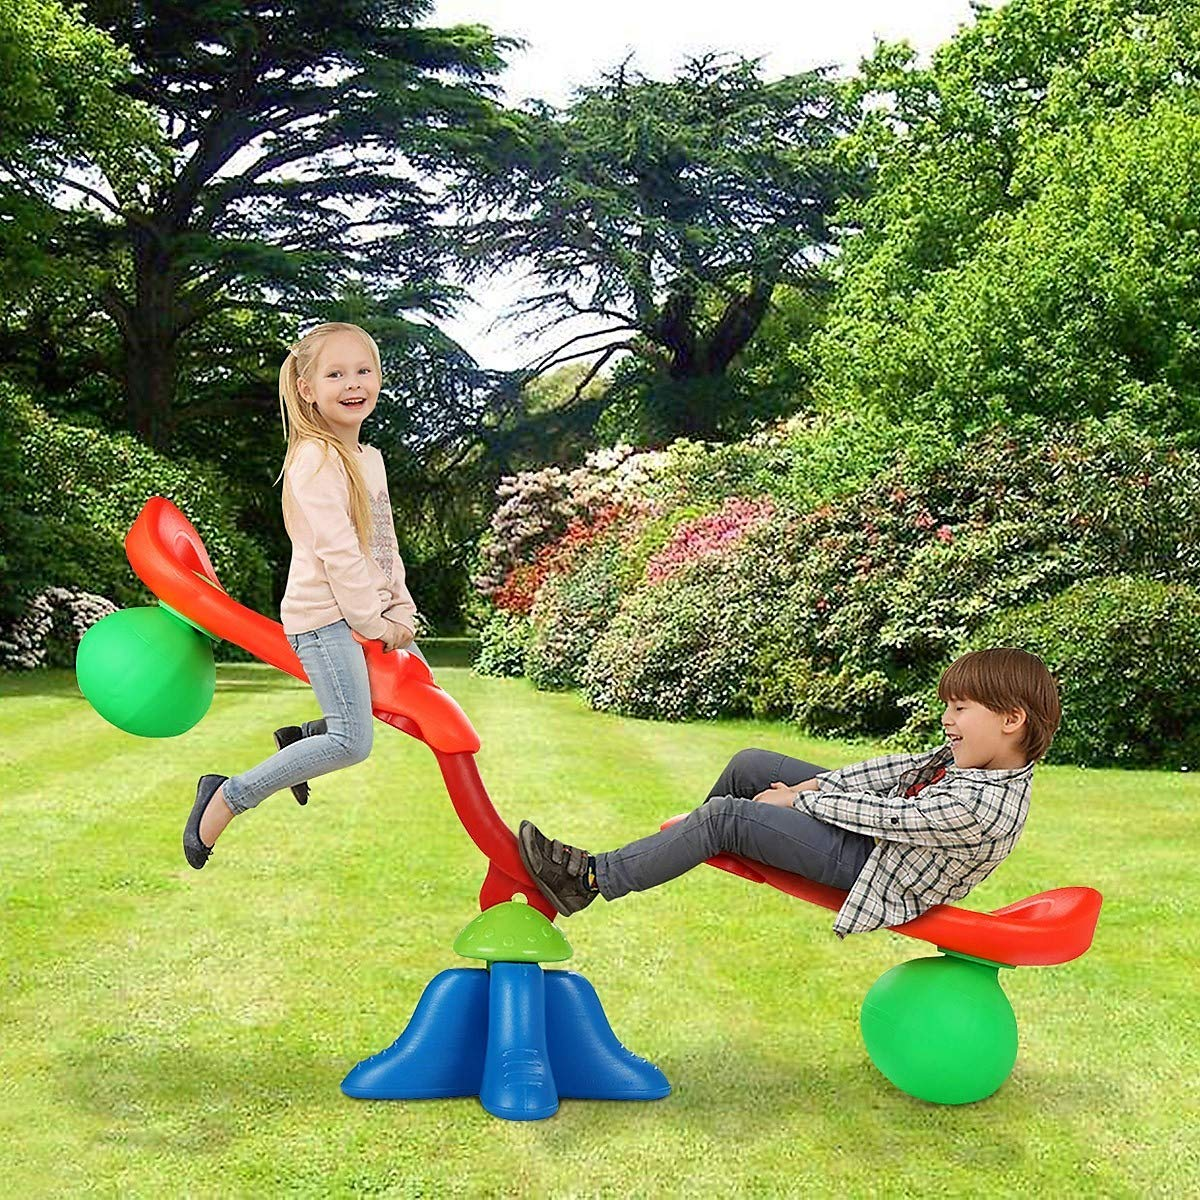 Lucky-gift - Kids Seesaw 360 Degree Spinning Teeter - Teeter Totter for Kids - 360 Degree Sturdy Child Spinning Kids - Teeter Play Outdoor Set - Bouncer Totter Activity Children Sporting Fun Seats by Lucky-gift